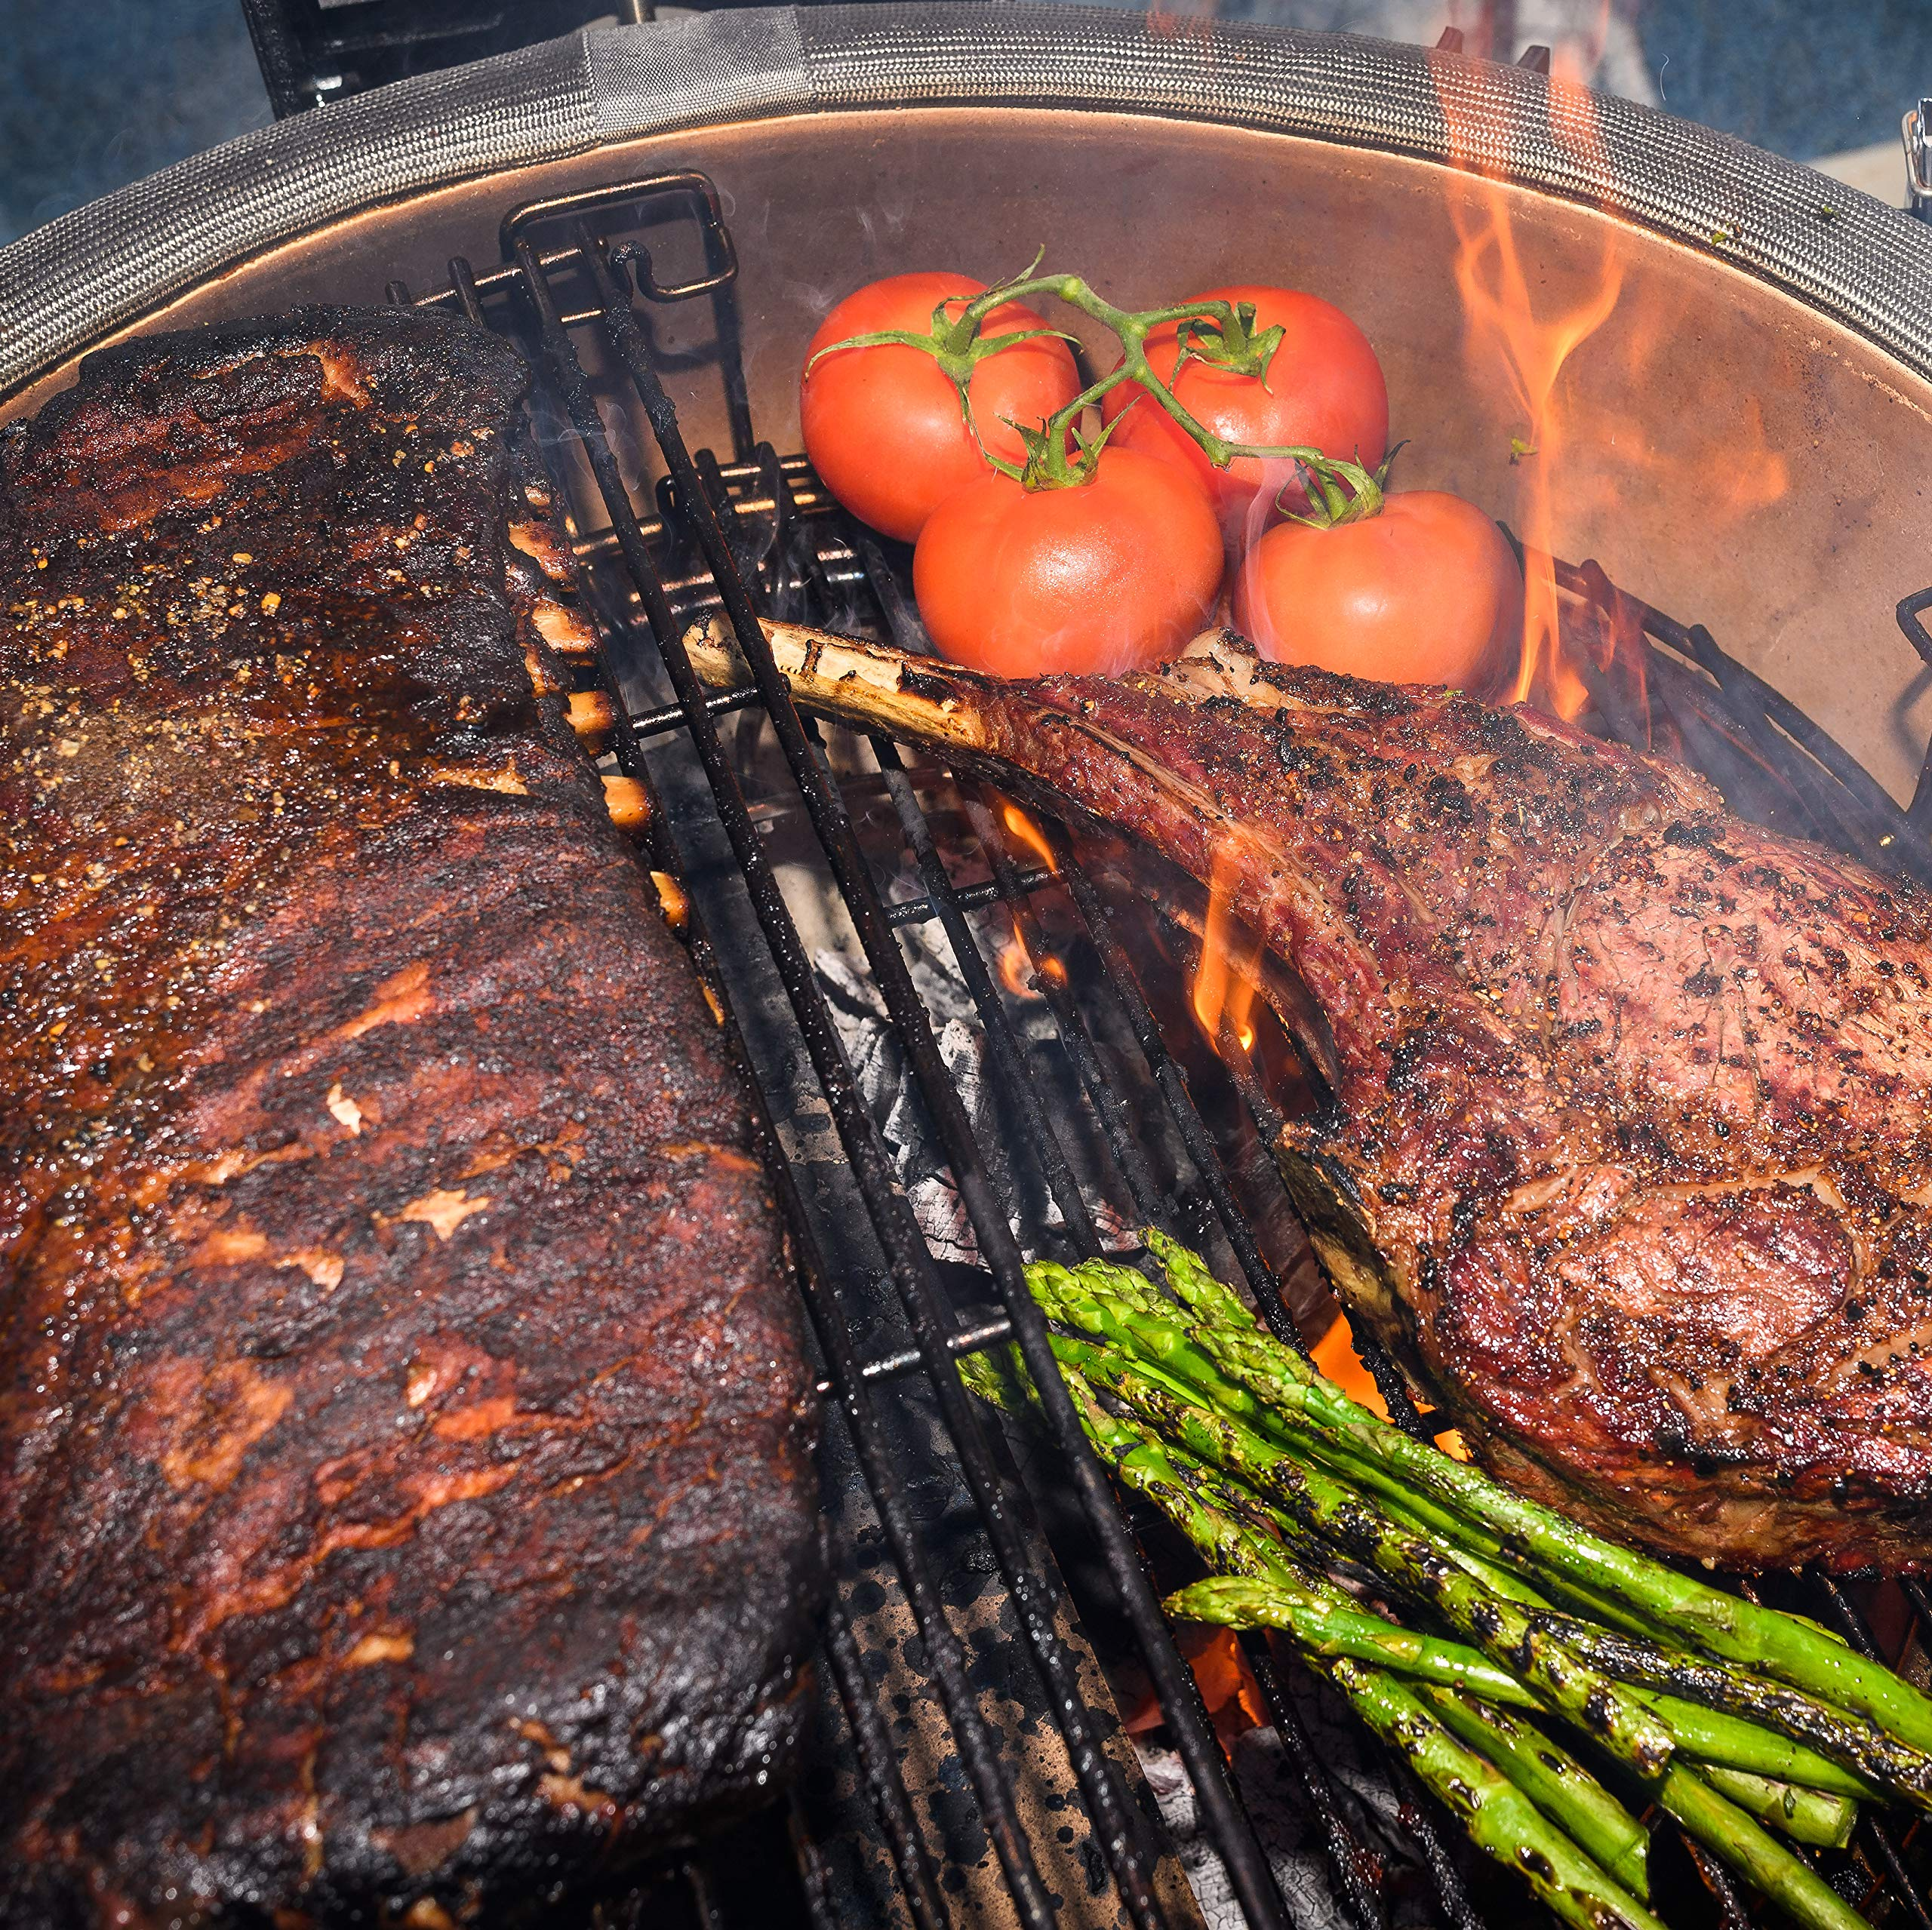 How grease is collected in Kamado Joe Grill